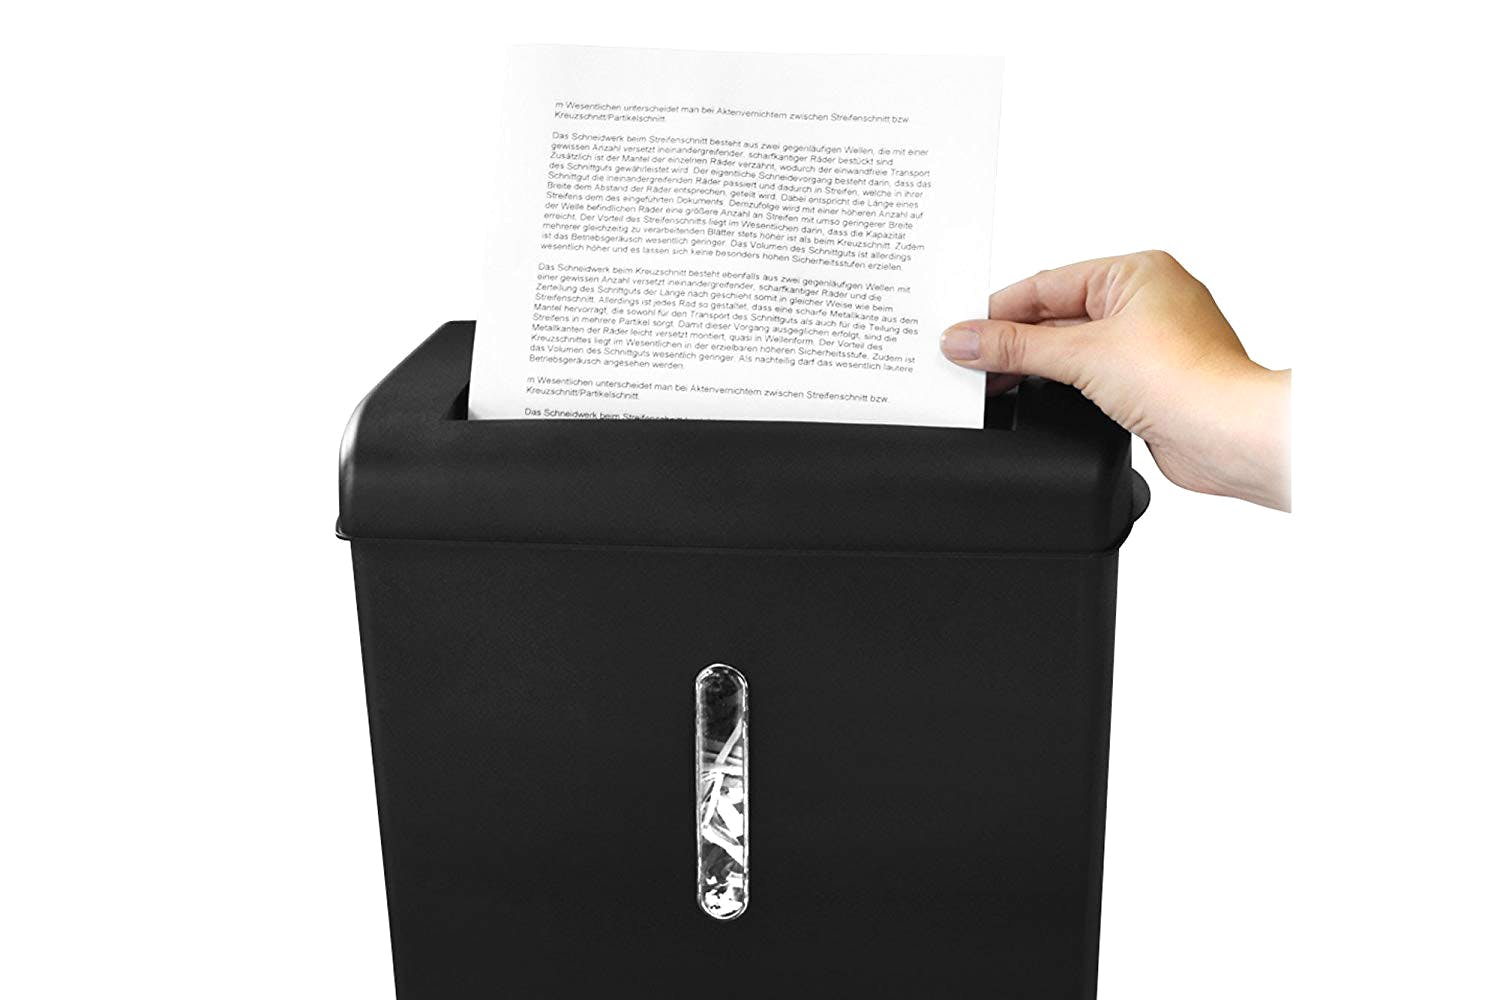 Ednet 7 Sheet Shredder